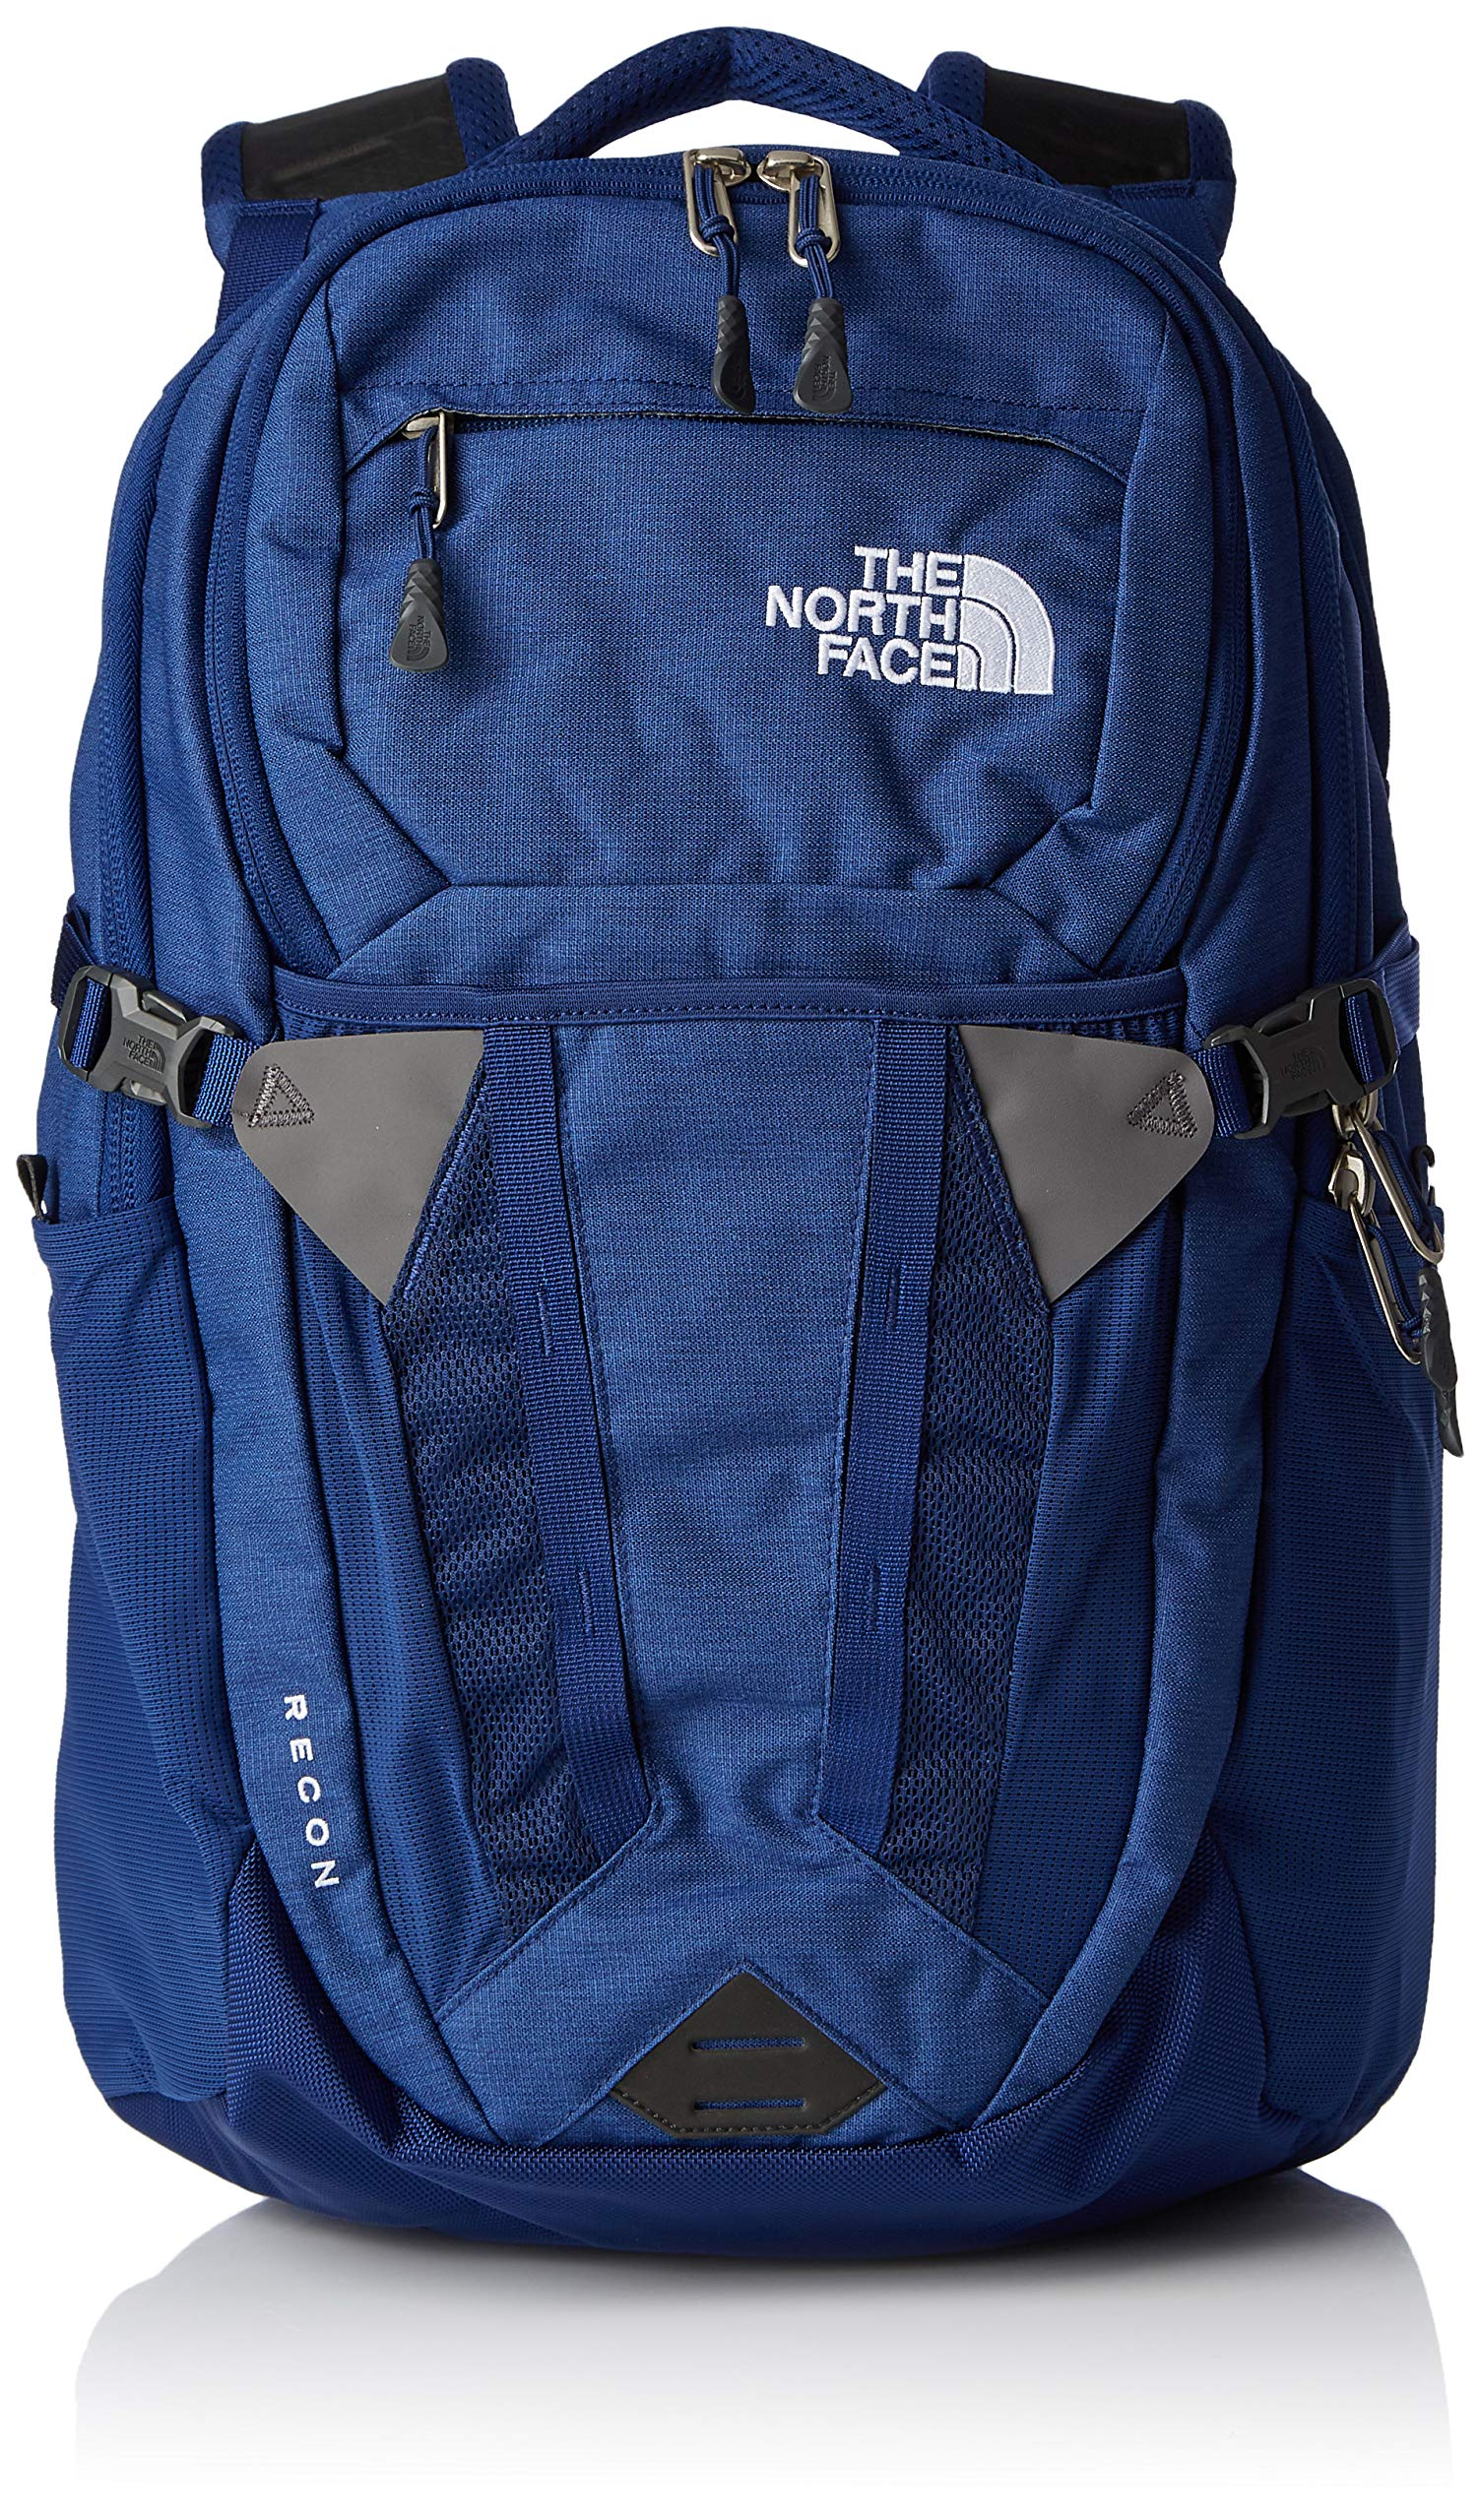 The North Face Recon Backpack- Flag Blue Dark Heather & TNF White - OS